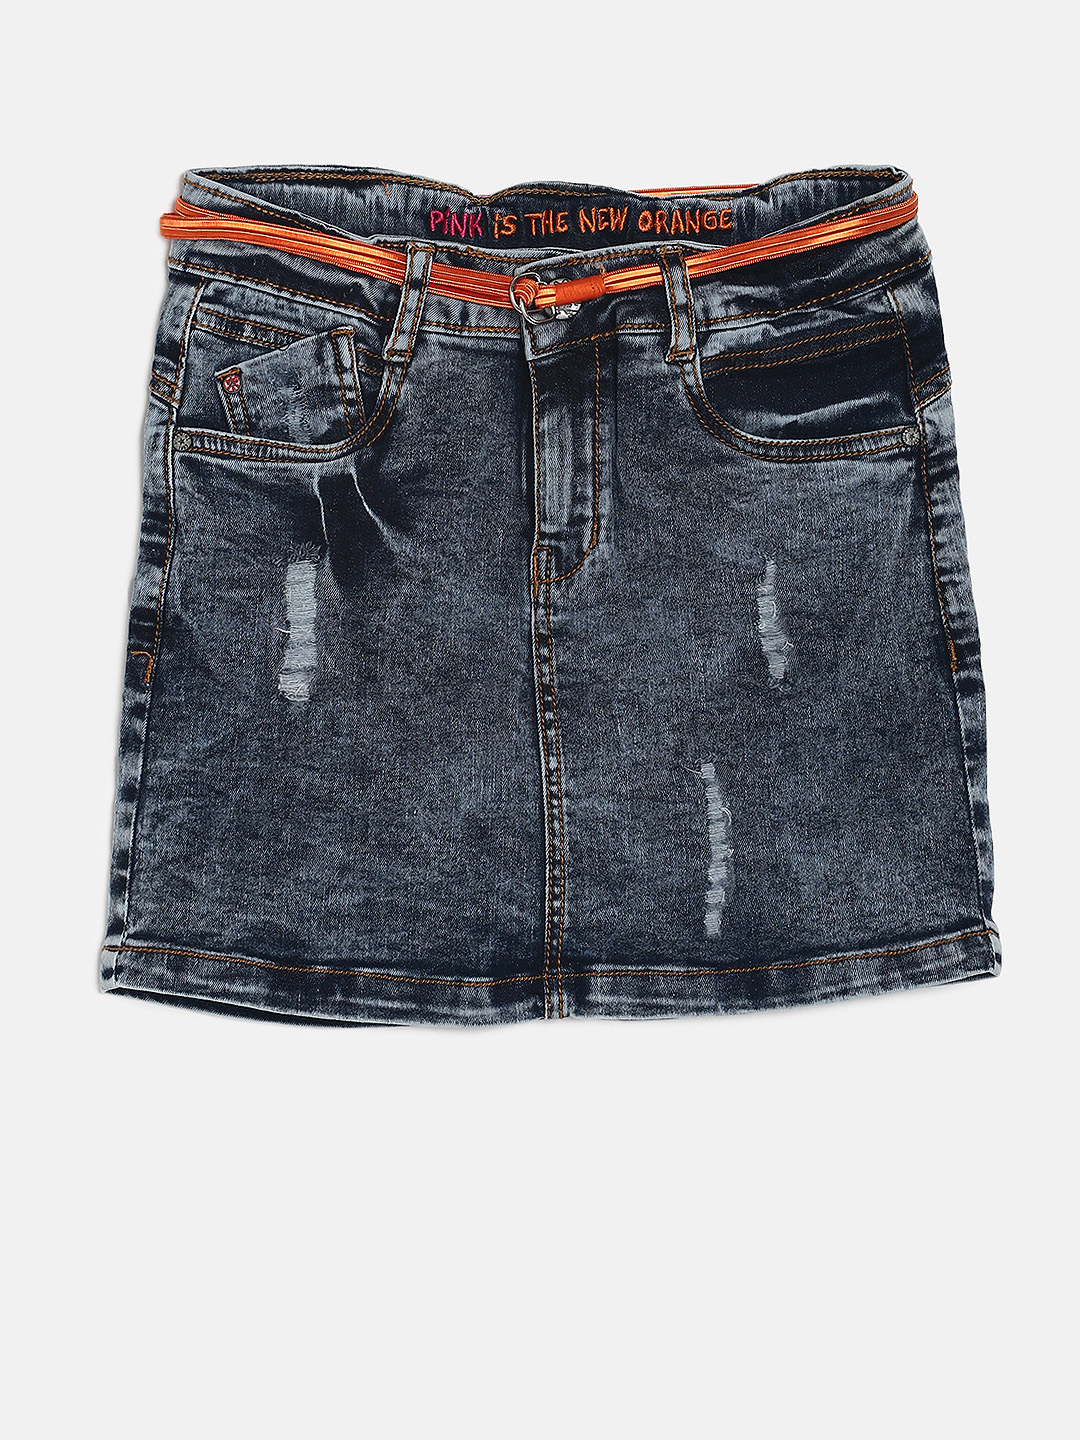 VITAMINS Girls Blue Washed Distressed Denim Skirt Price in India